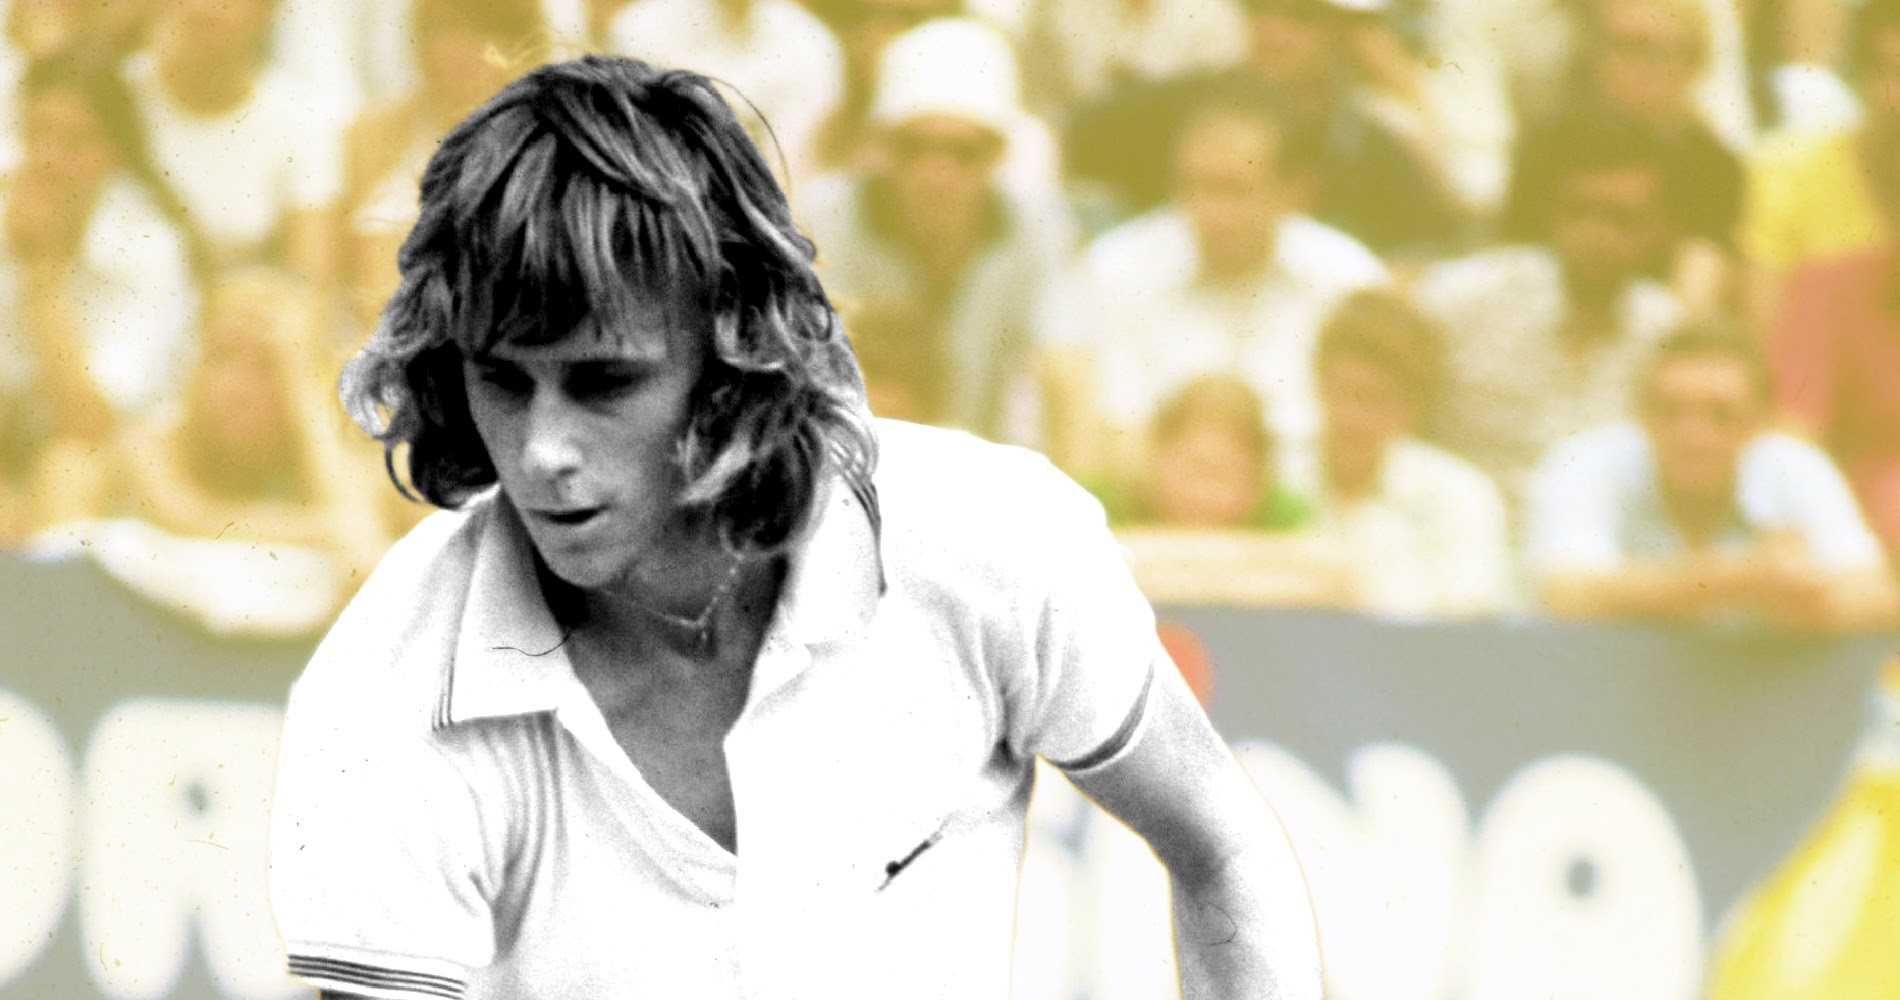 Bjorn Borg, On this day 21.12